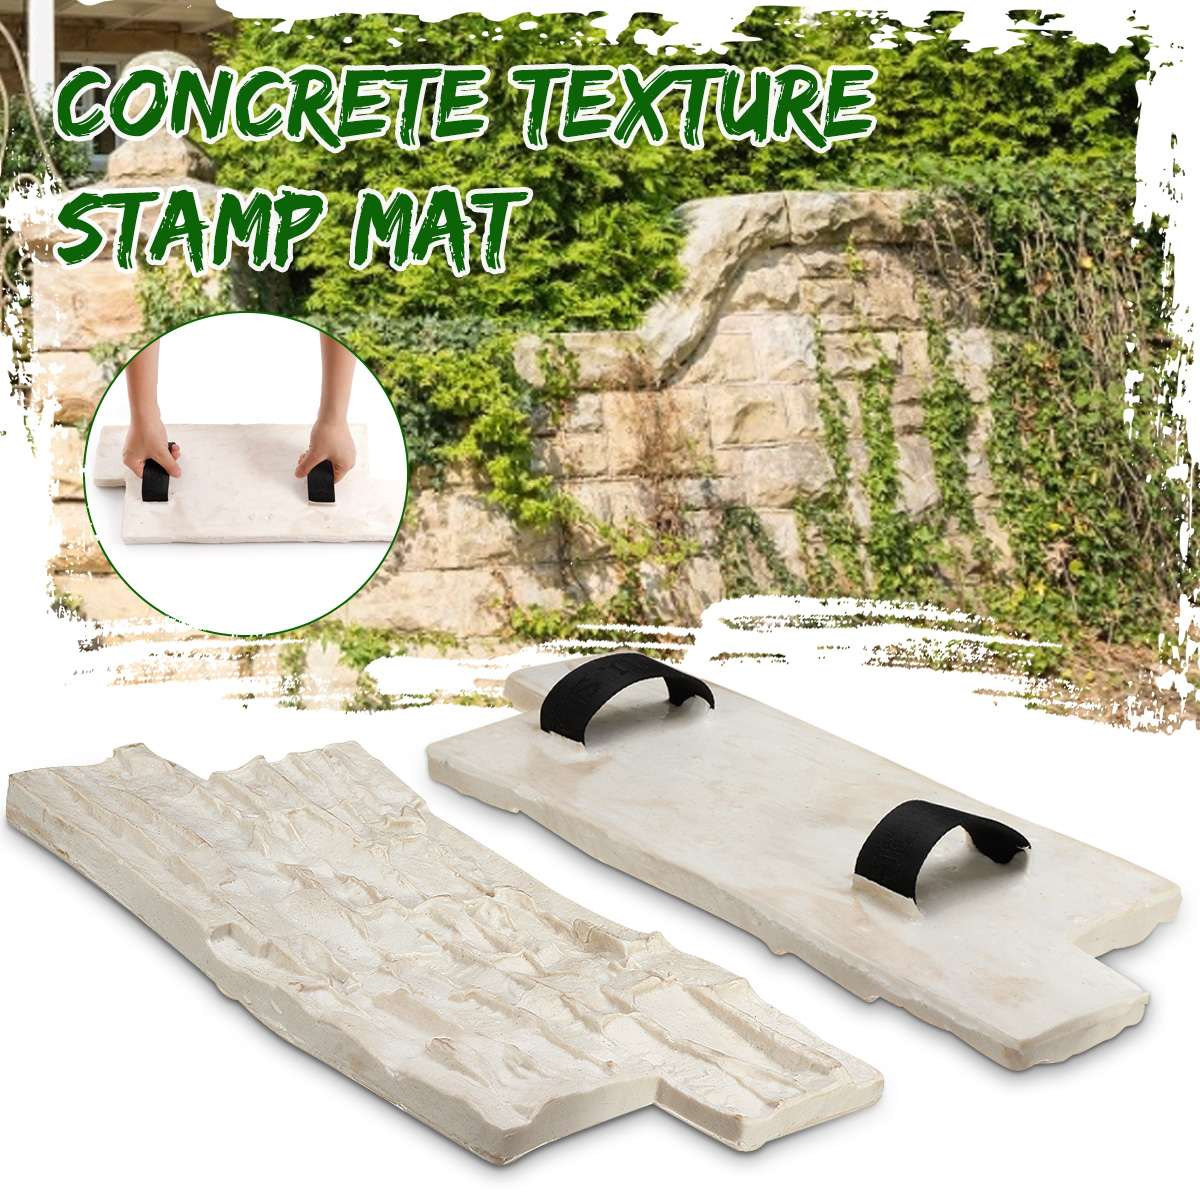 New 2 Size Polyurethane Molds For Concrete Garden House Decor Texture Wall Floors Molds Cement Plaster Stamps Model Molds